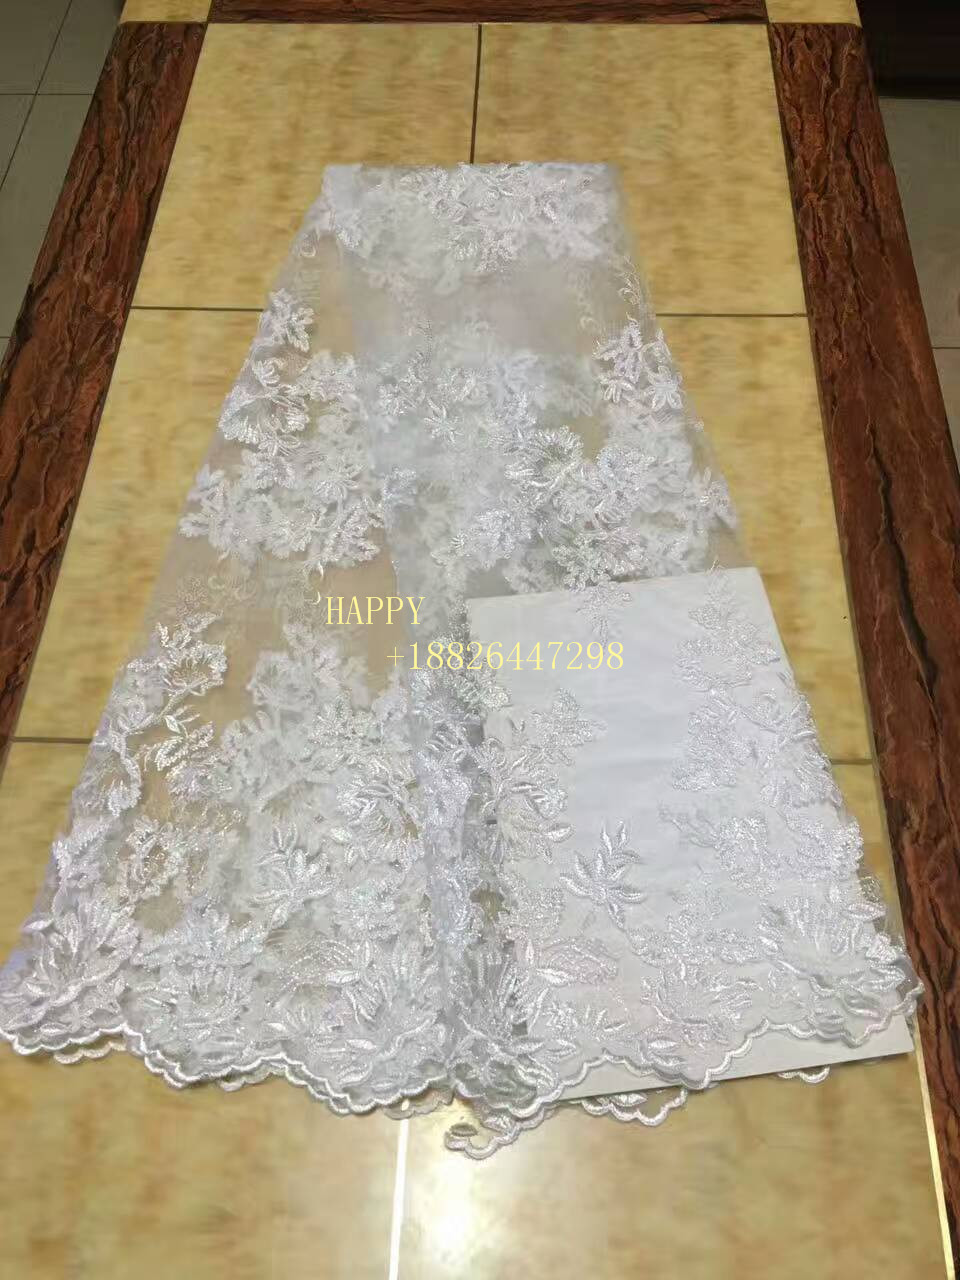 The Best 3d Lace Fabric 2018 High Quality Lace African Lace Fabric Net French Tulle Lace Fabric Lr043 Free Ship By Dhl Parts & Accessories Apparel & Merchandise